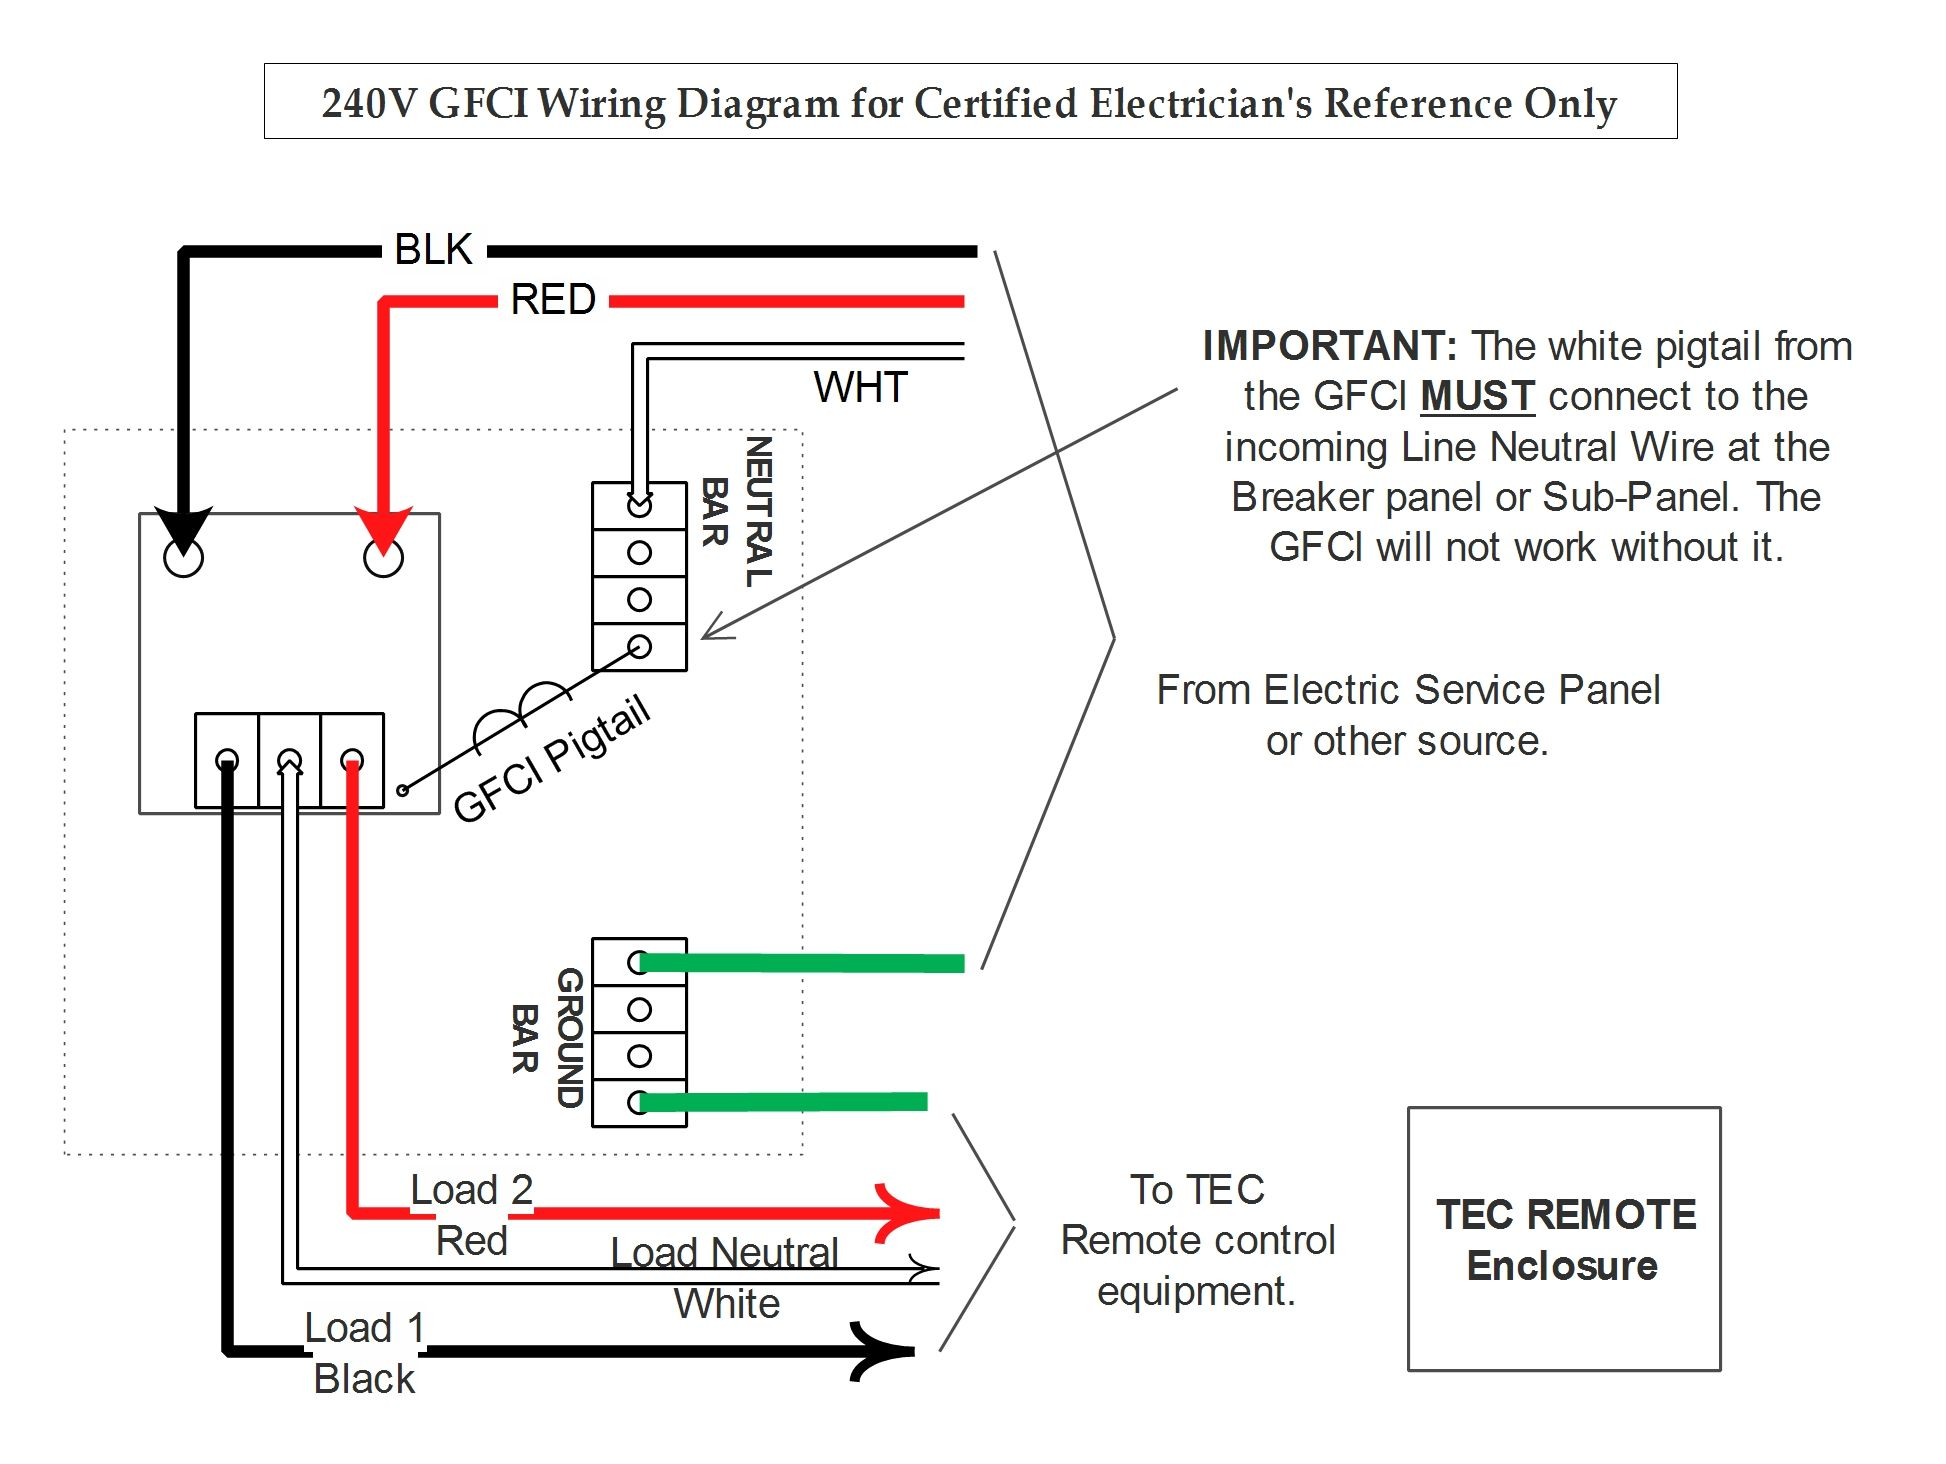 GFCI 240 Wiring wiring & installation boat lift wiring diagram at crackthecode.co